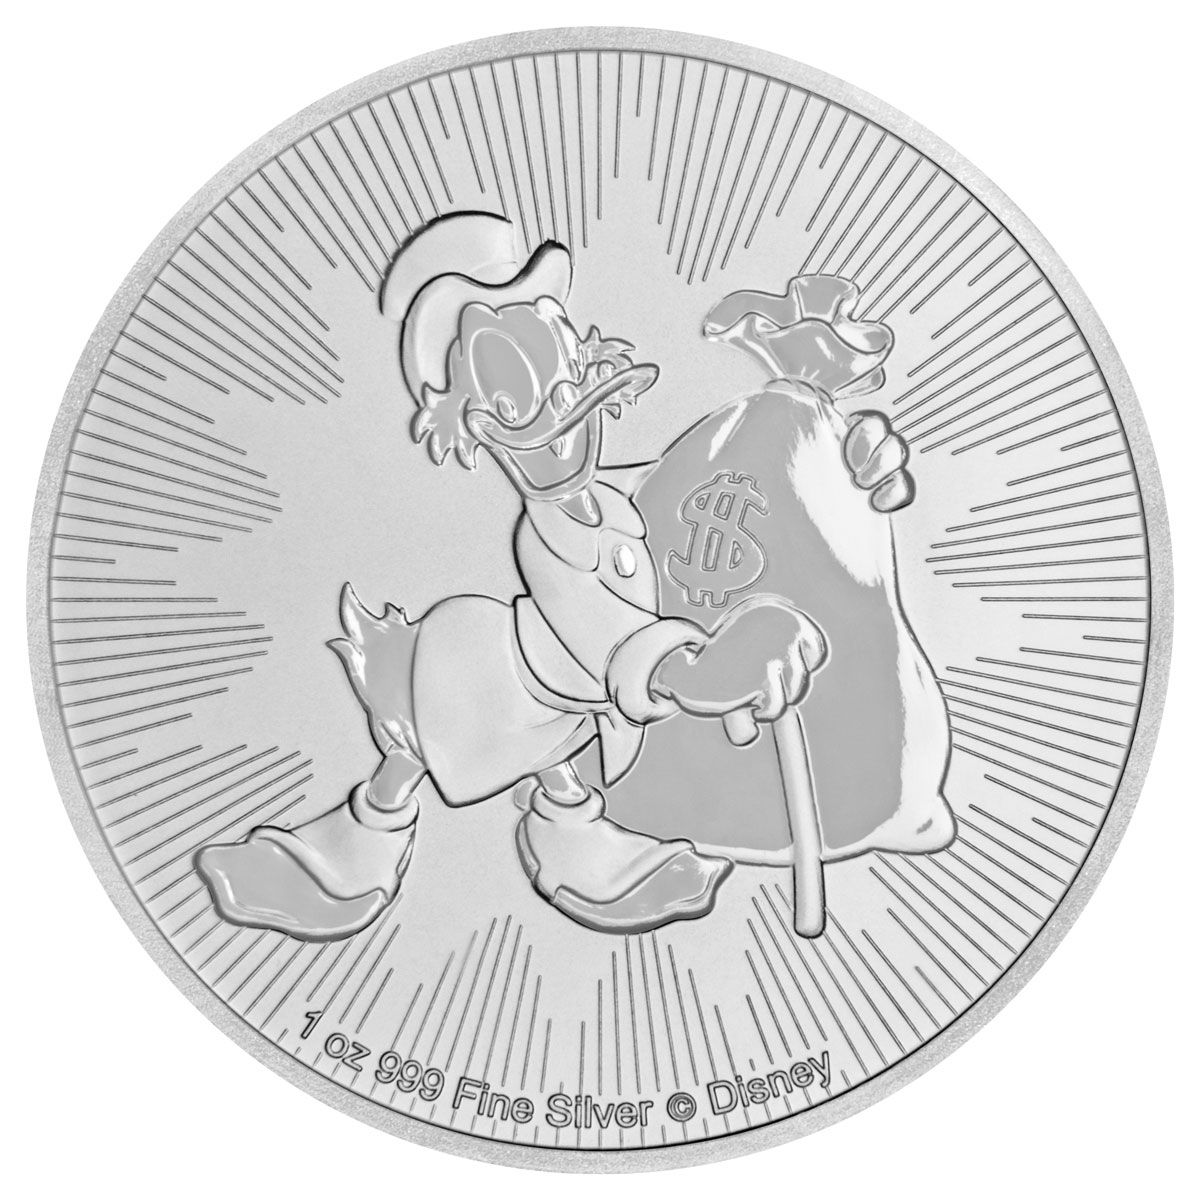 2018 NIUE SILVER $1 DISNEY CHARACTERS SCROOGE McDUCK NGC MS 69 EARLY RELEASES